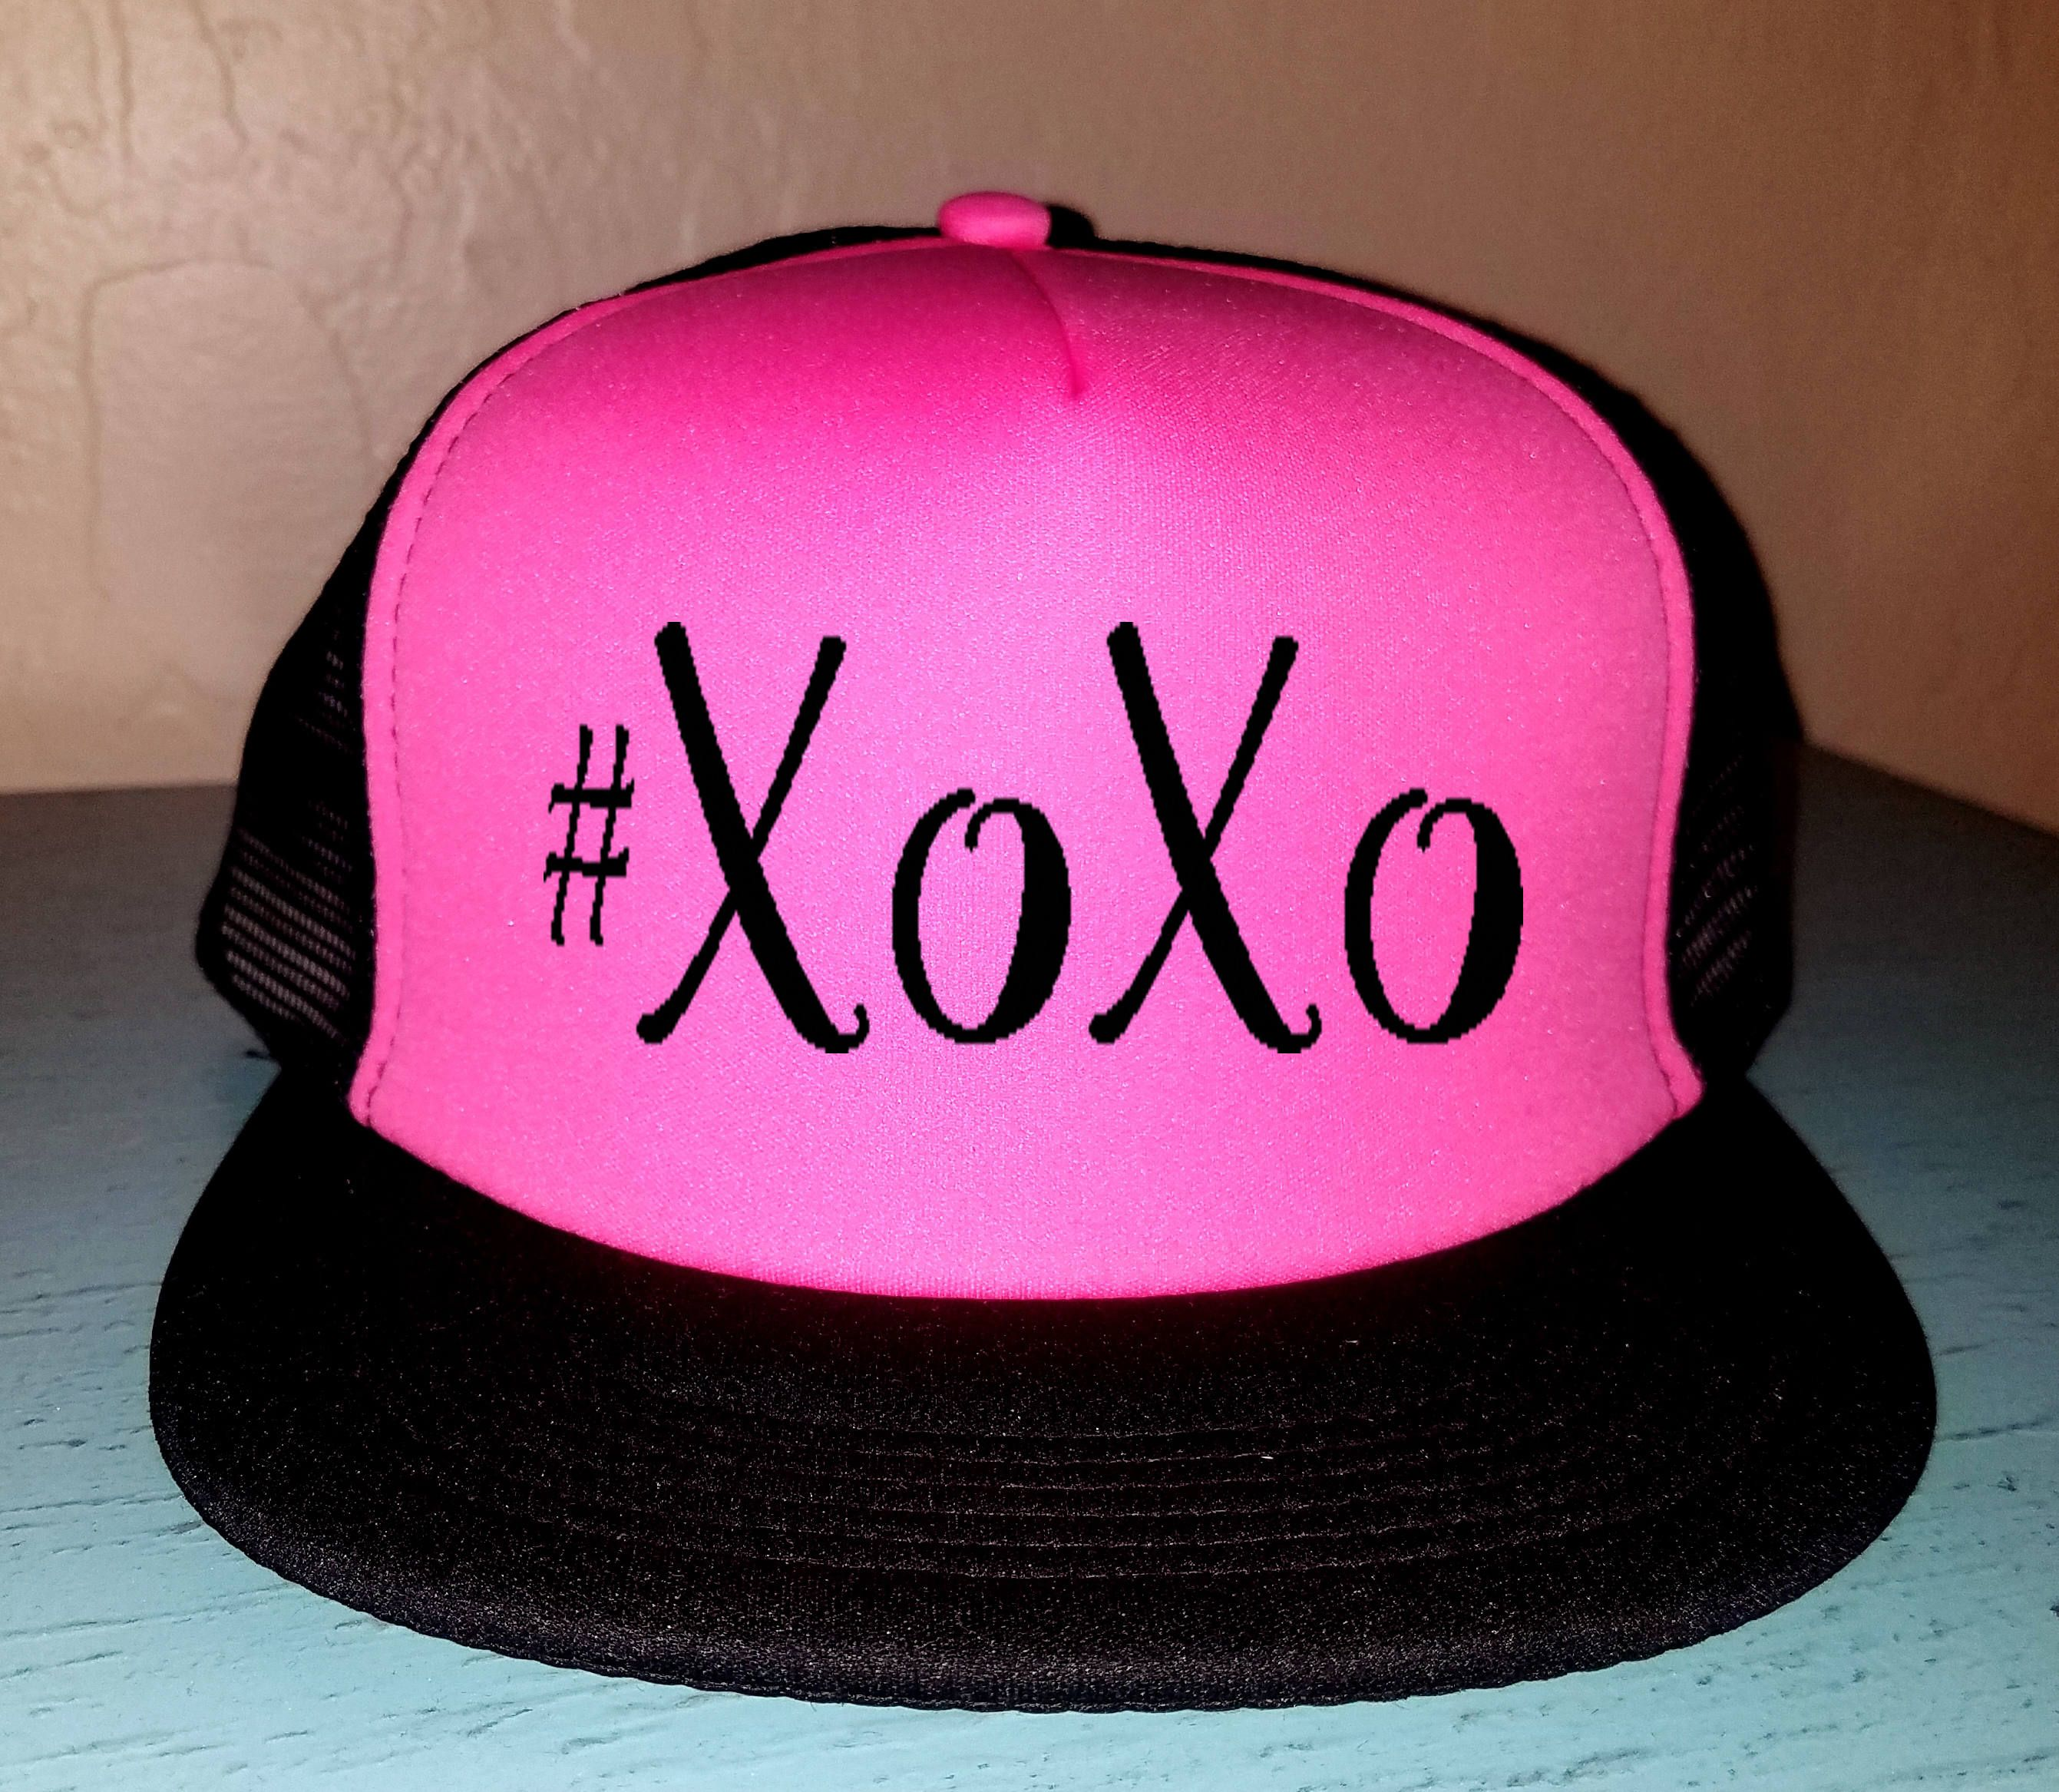 XOXO Trucker Hat Snapback Adjustable Trucker Hat Fit Mom Love Valentine Day  Hat Funny V Day Hat Love Hat Holiday Hat 7a77f6c2354d